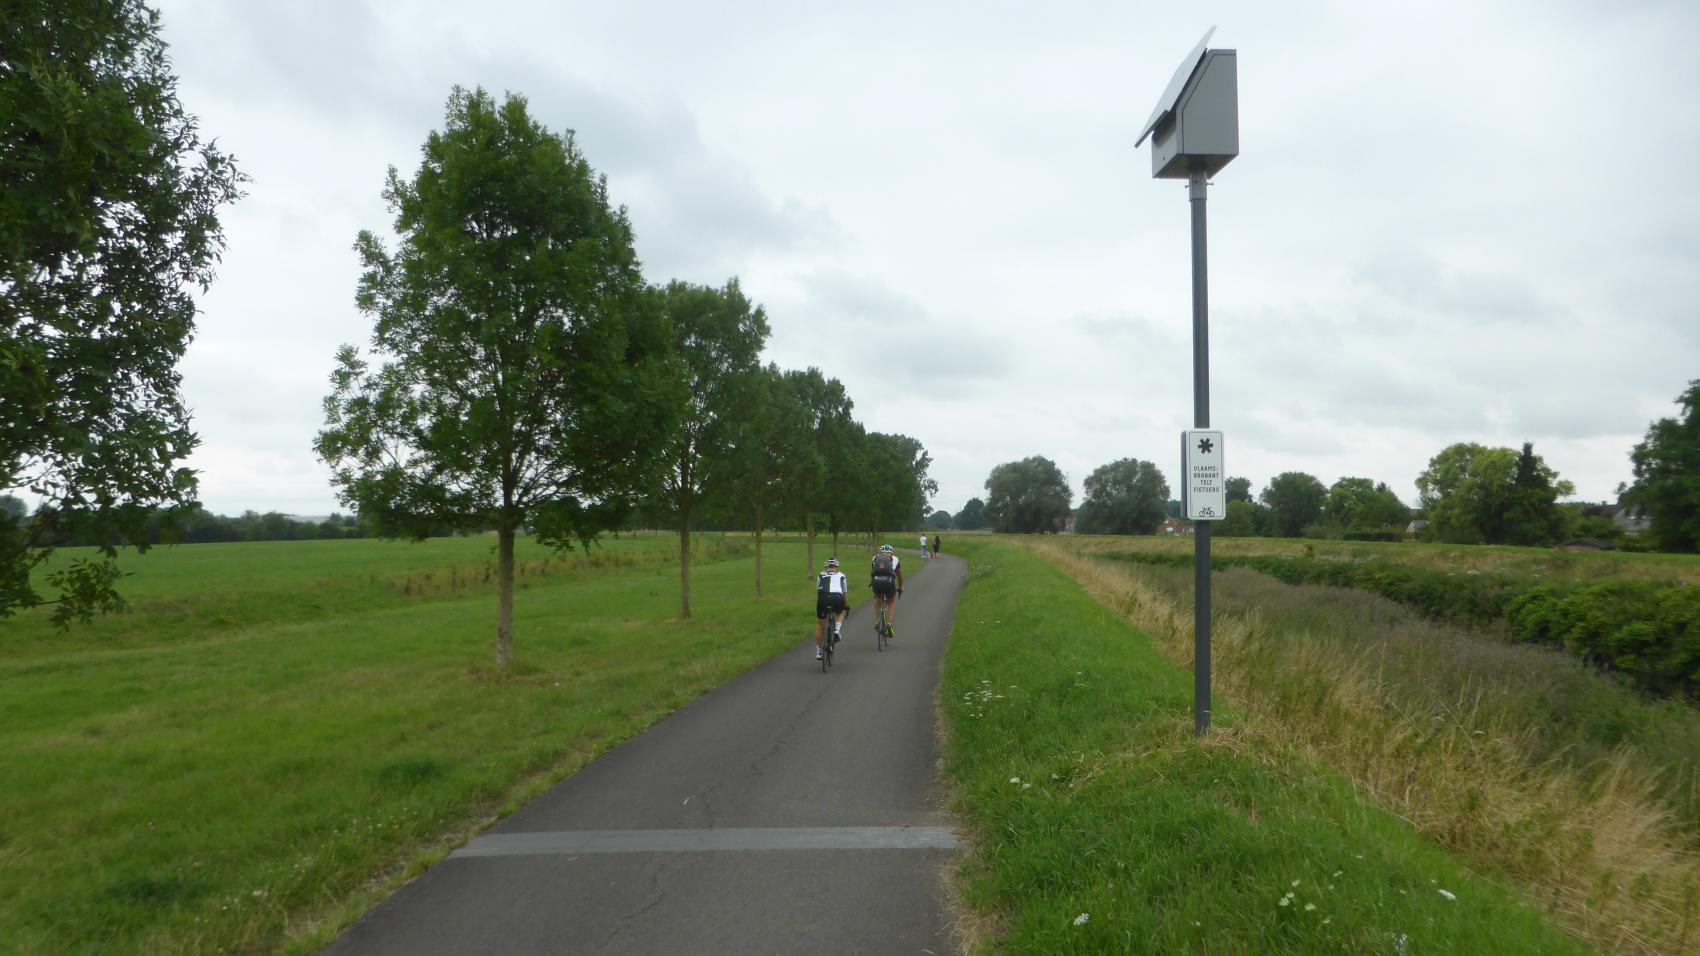 In Eppegem the new cycle path connects to an existing asphalt path continuing along Zenne to Vilvoorde.